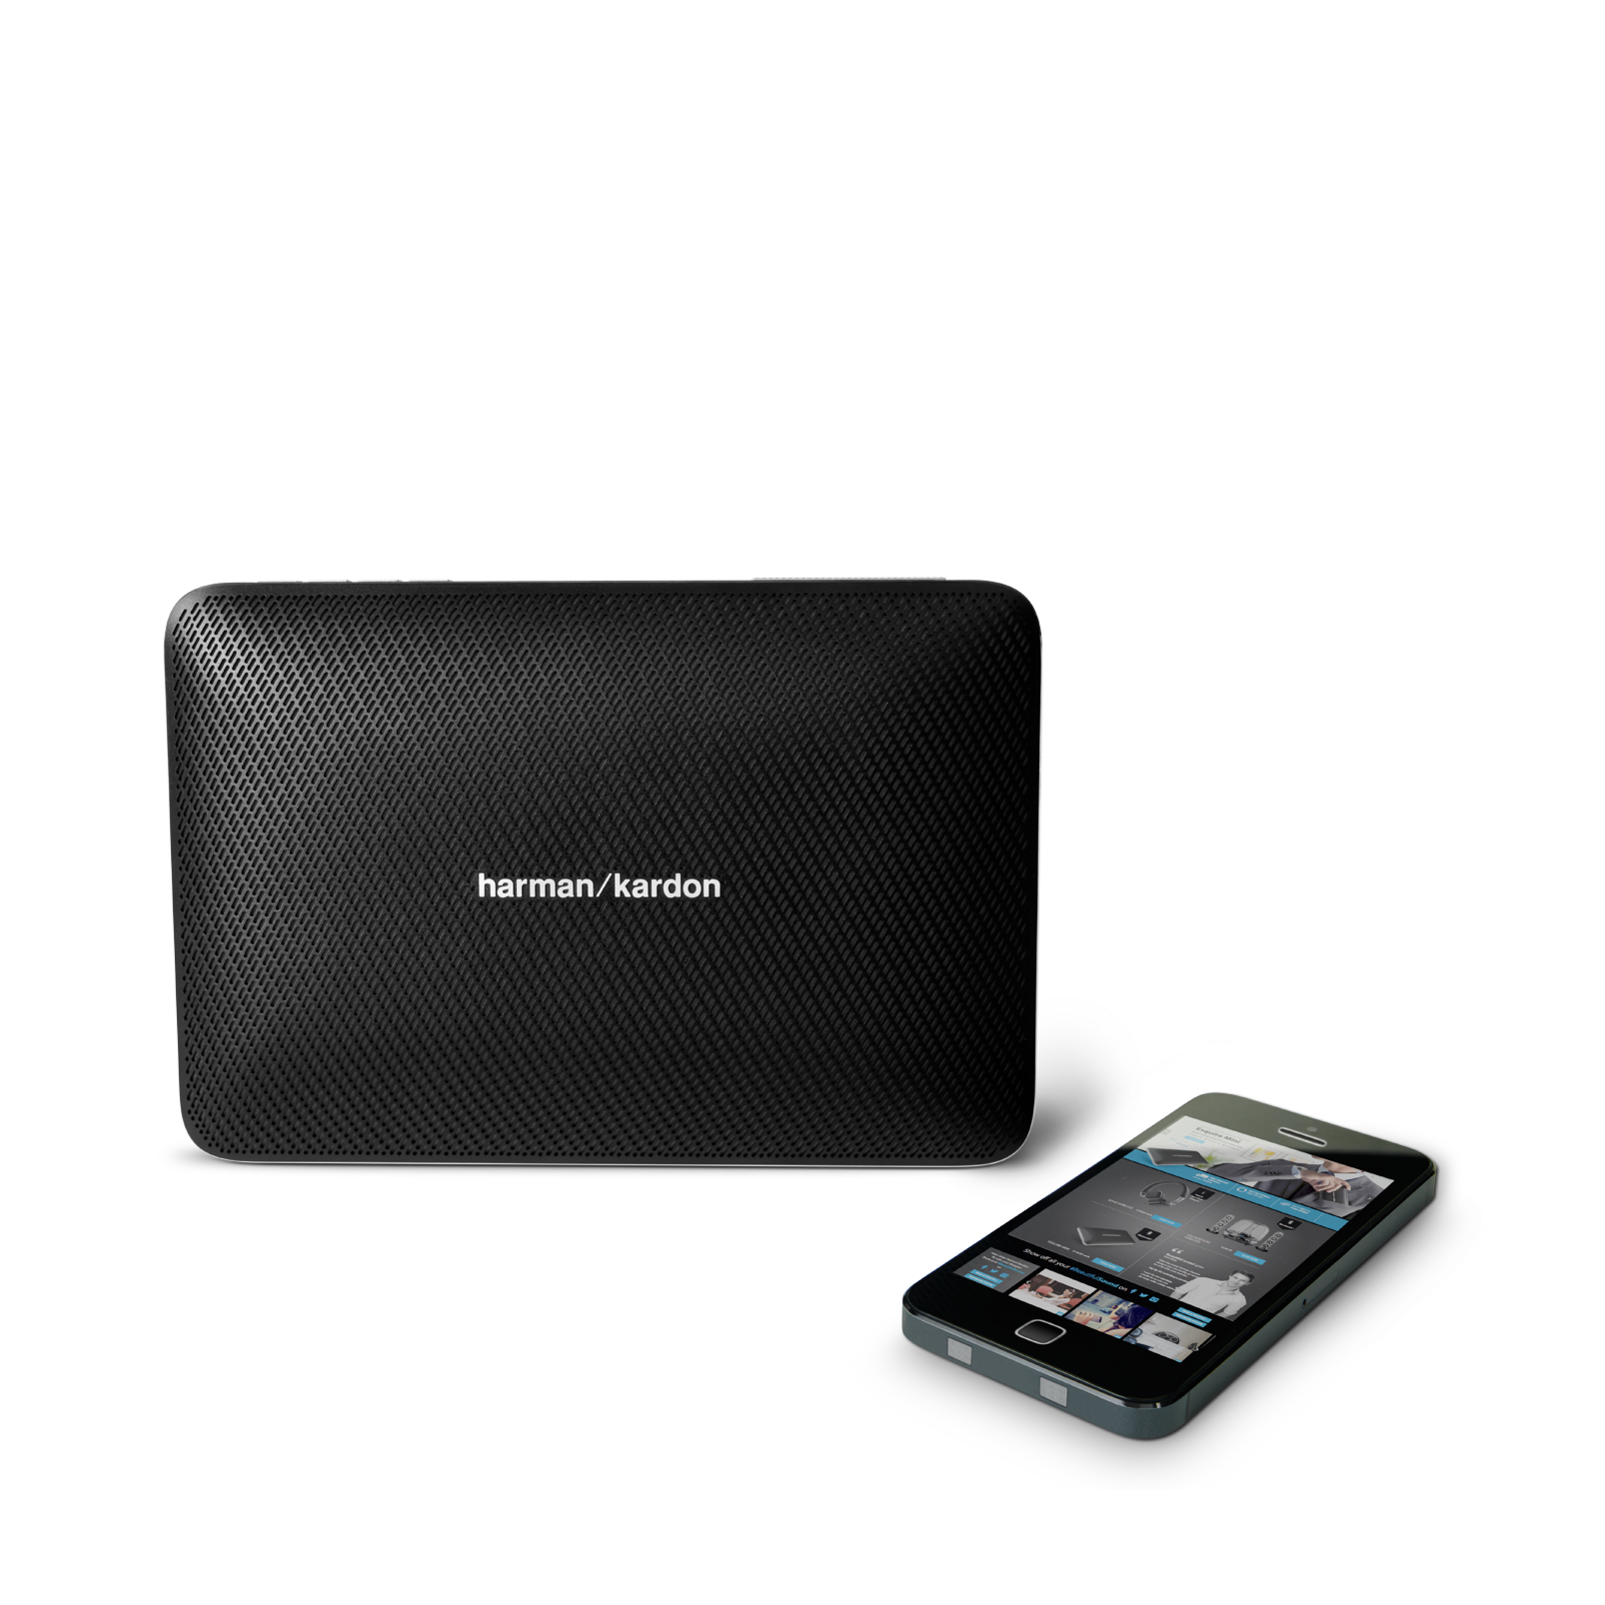 Harman Kardon Esquire 2 + Carrying Case for $80 Shipped